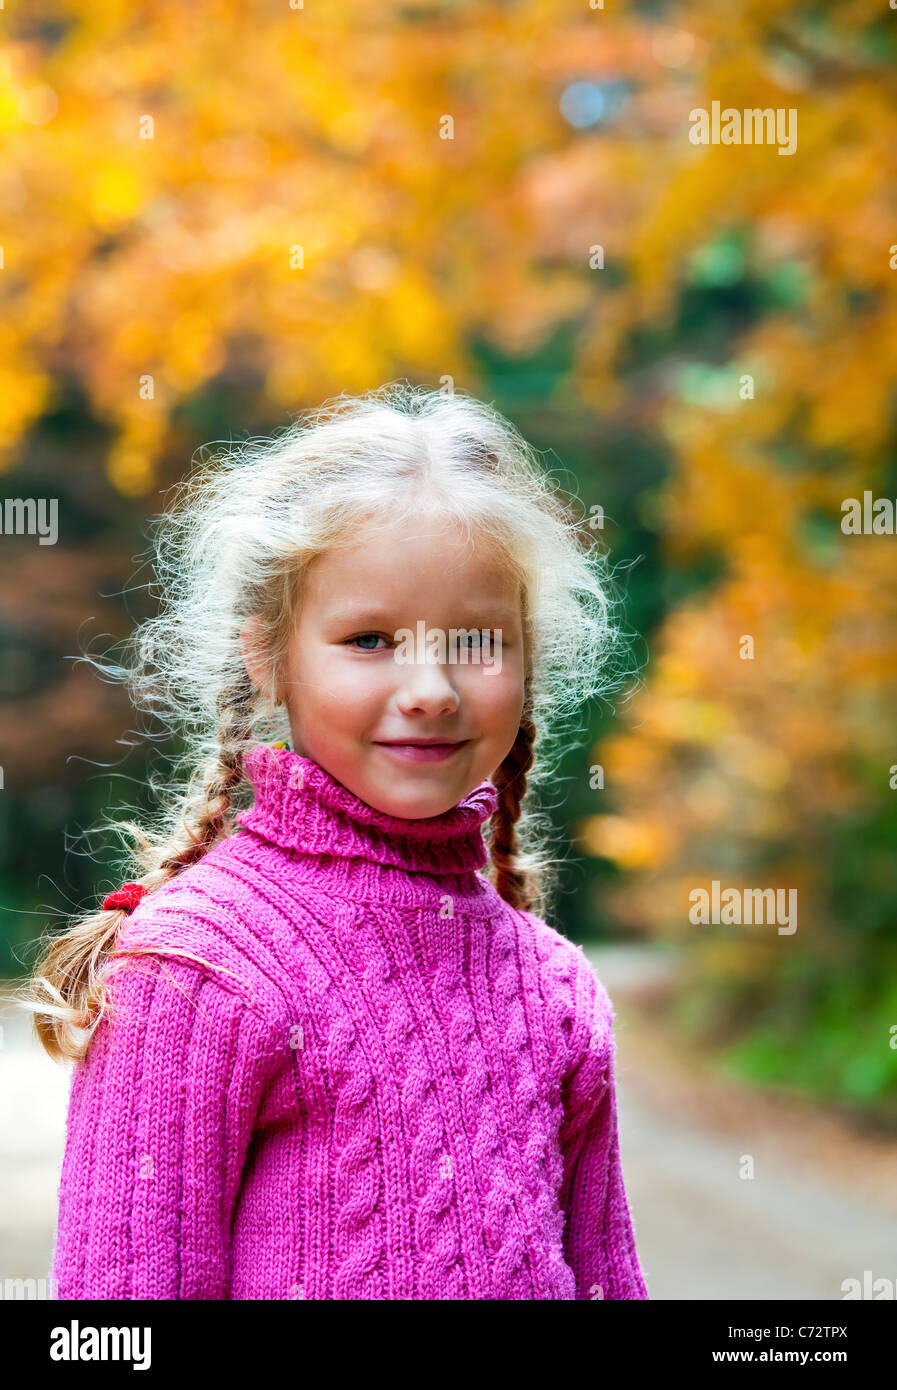 Schoolage girl portrait in a autumn mountain walk - Stock Image